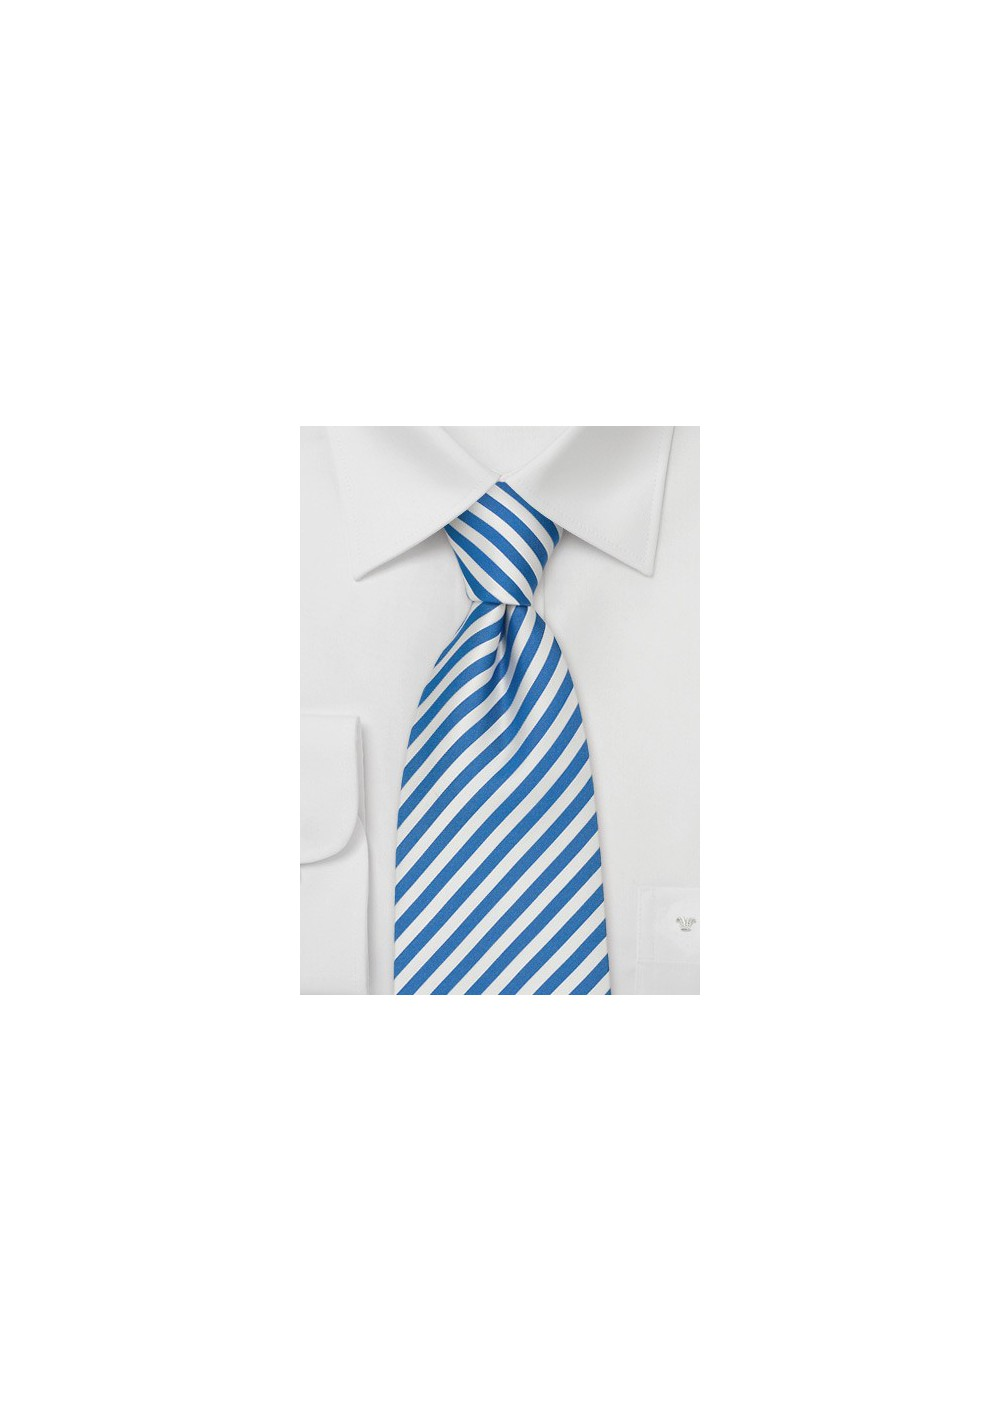 "Striped Neck Ties - Striped Tie ""Signals"" by Parsely"